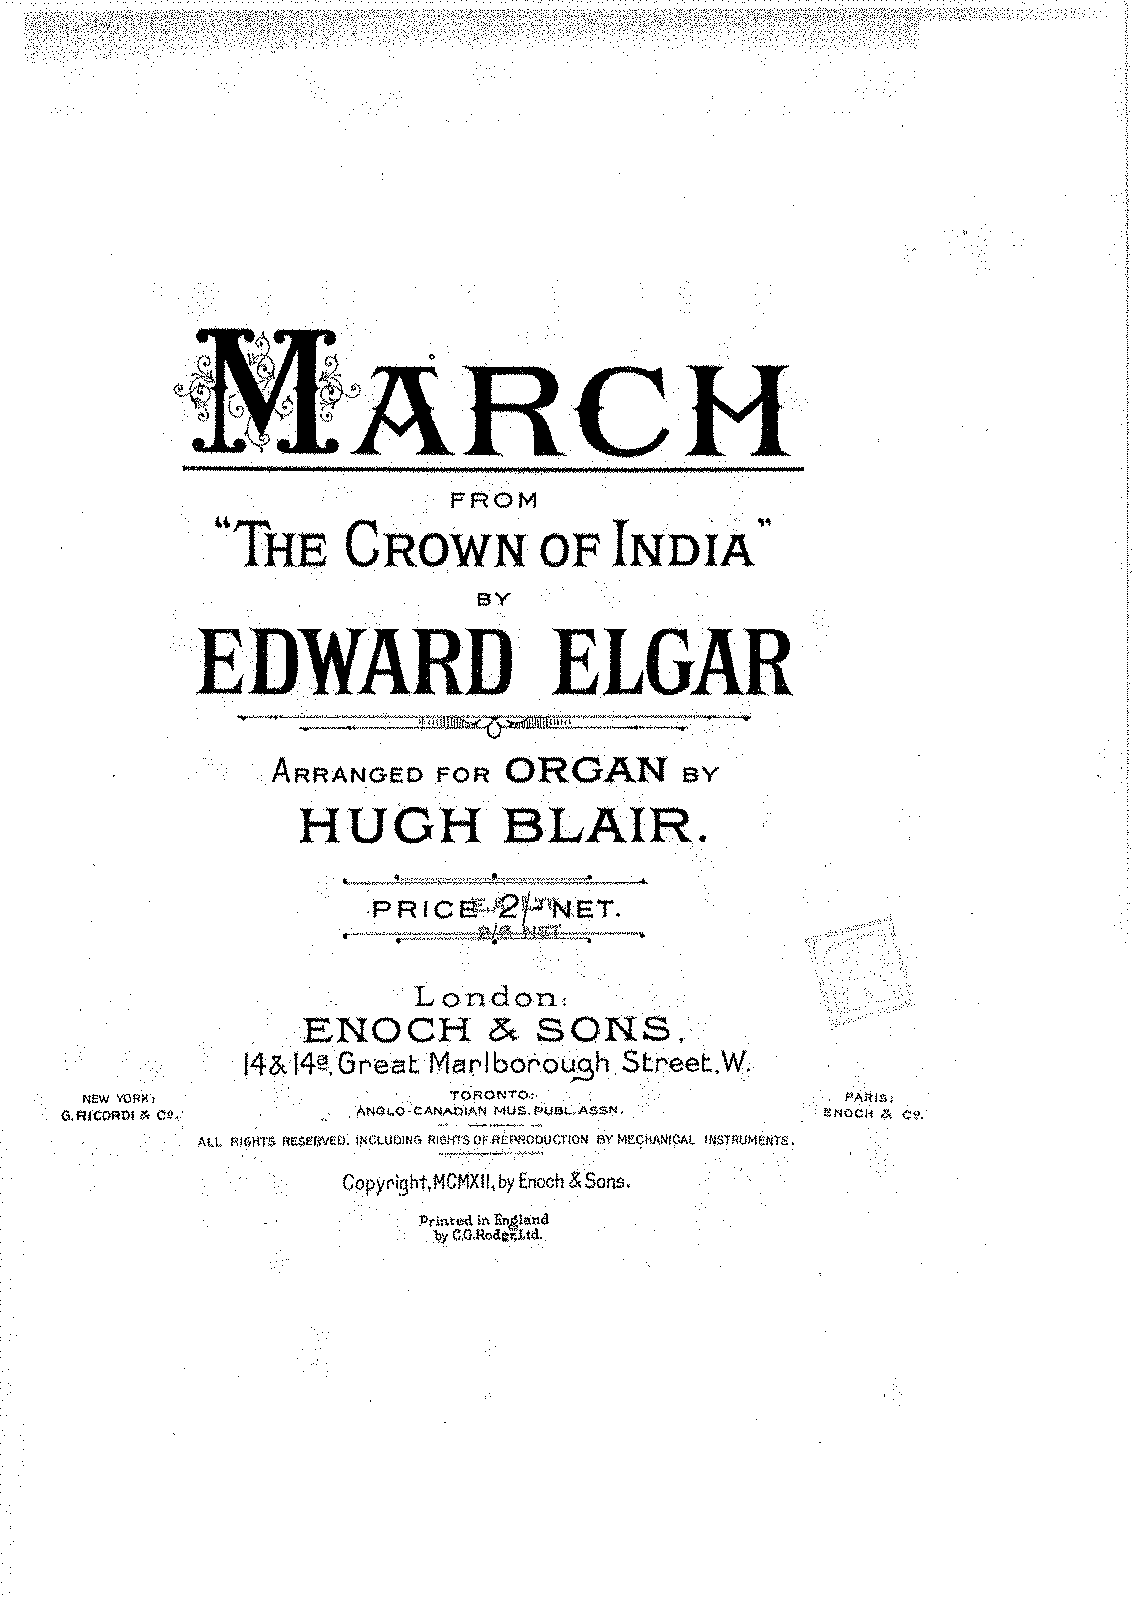 PMLP192115-Elgar - The Crown of India, Op. 66 (March - Crown of India), transc. H. Blair.pdf